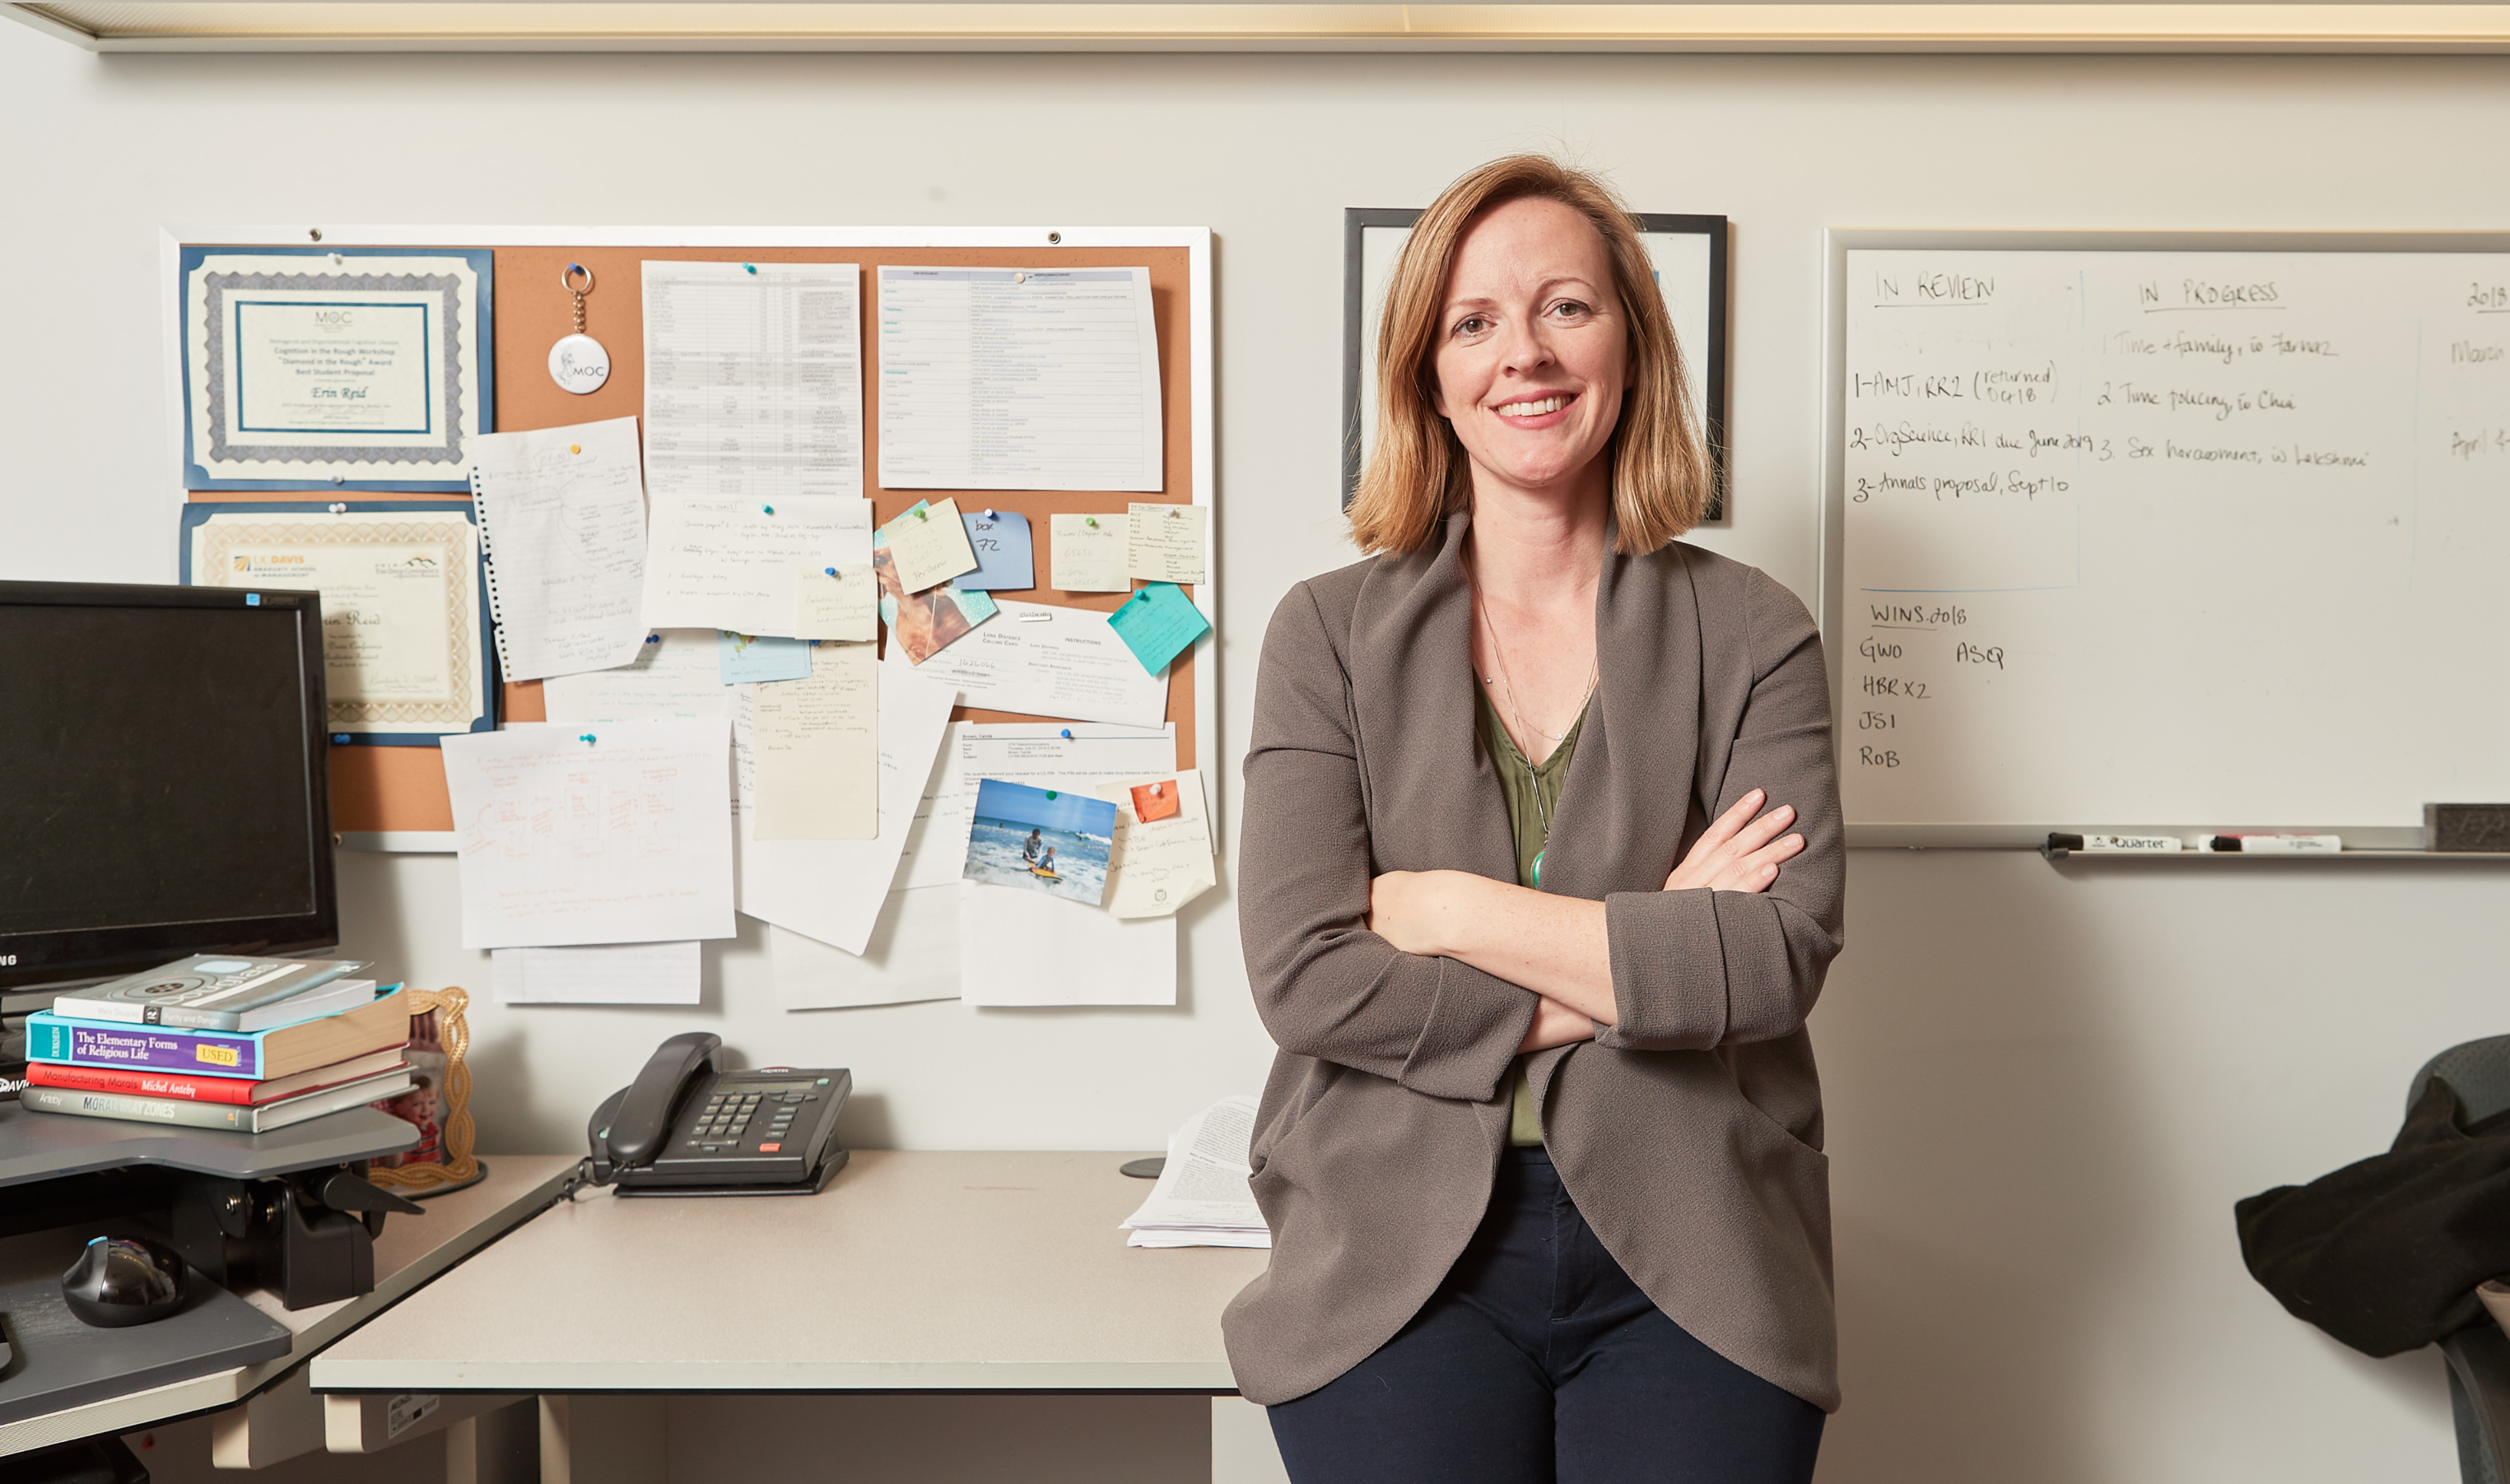 Erin Reid, associate professor of human resources and management at the DeGroote School of Business. Photo by Kevin Patrick Robbins